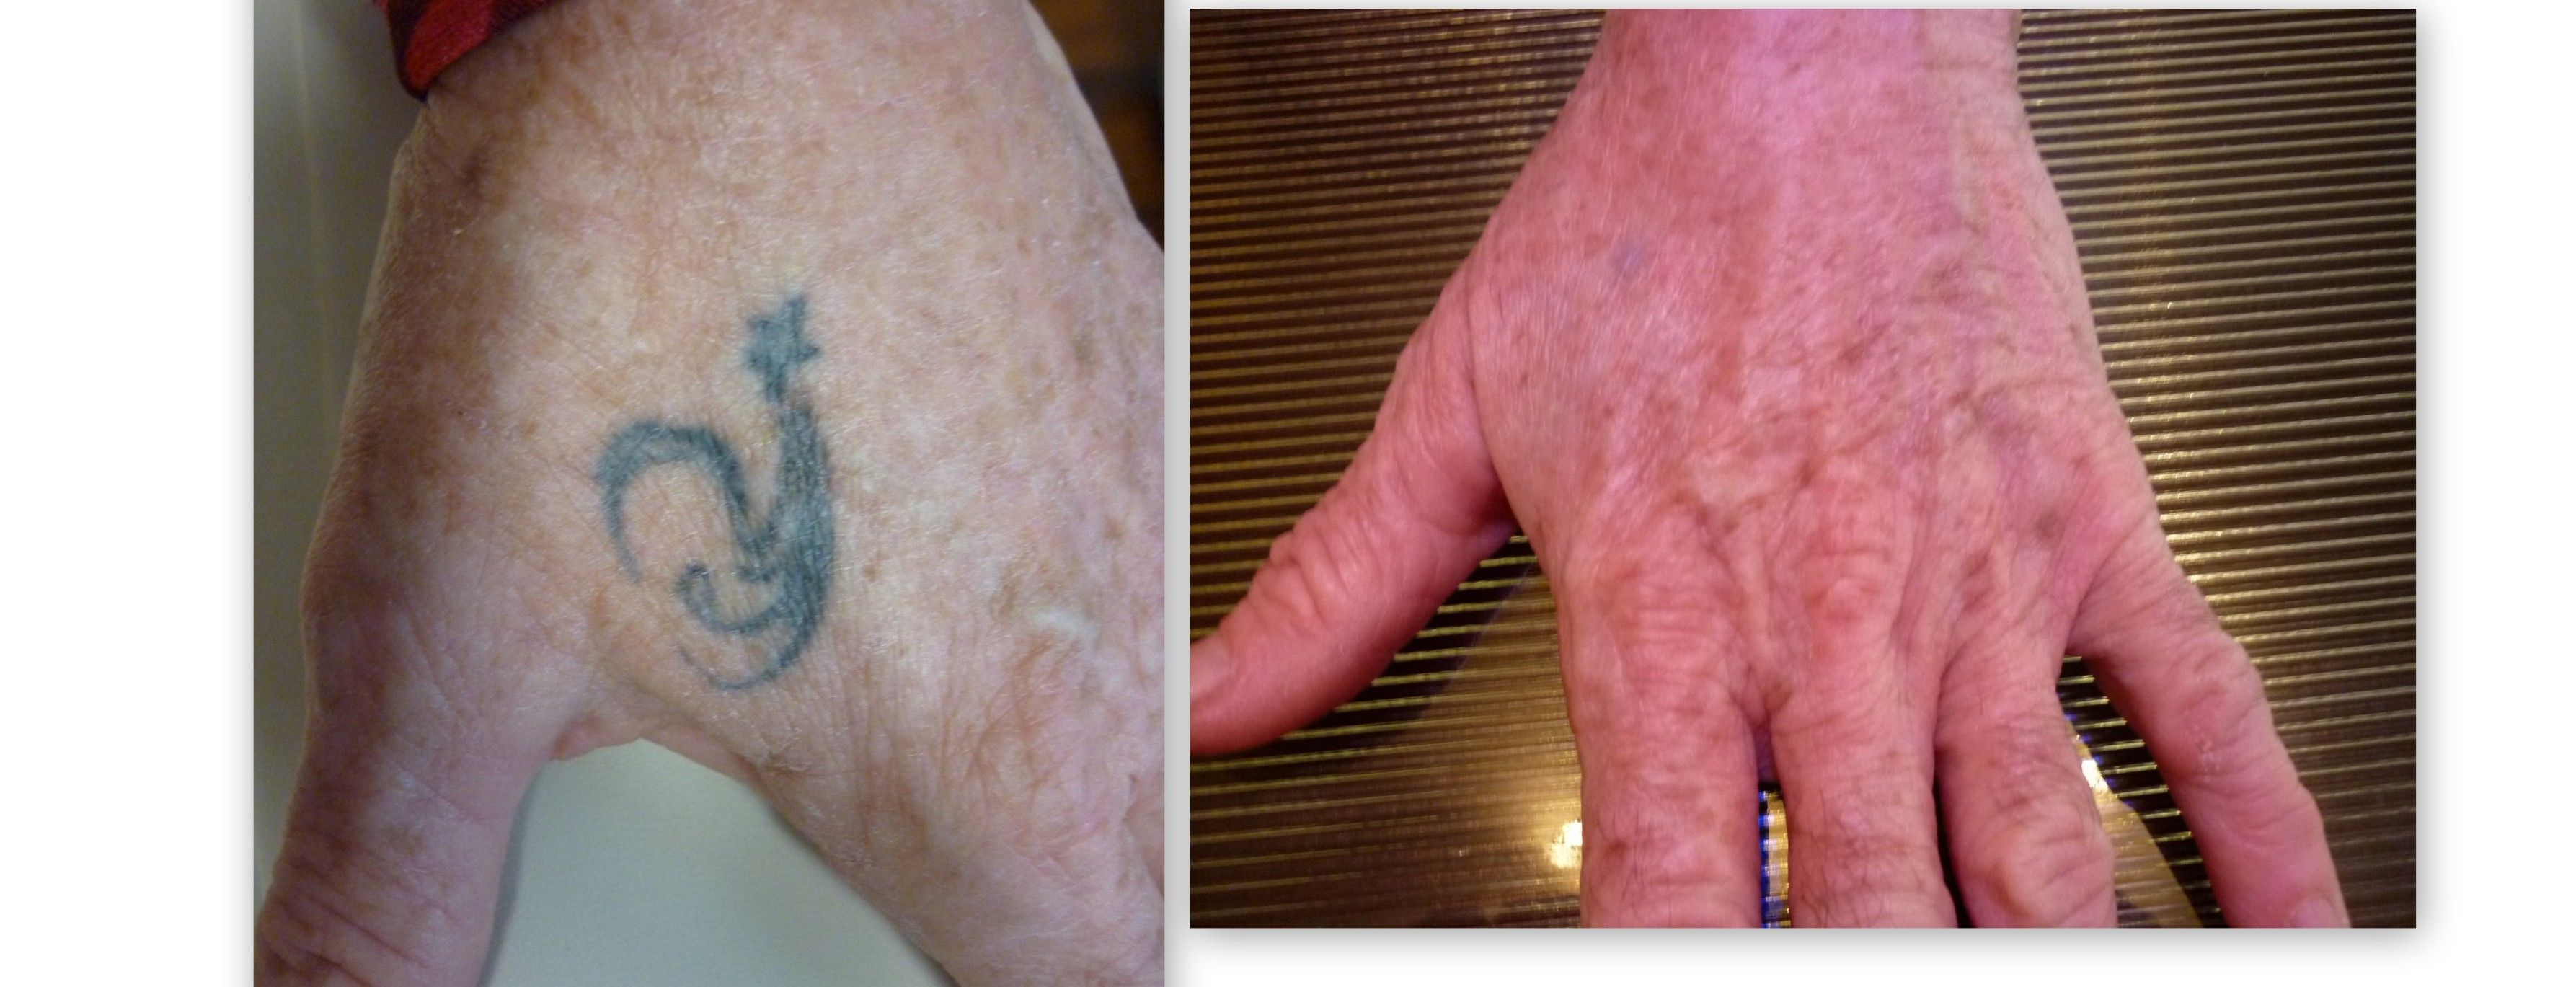 Laser Tattoo Removal Before & After 6 treatments on the